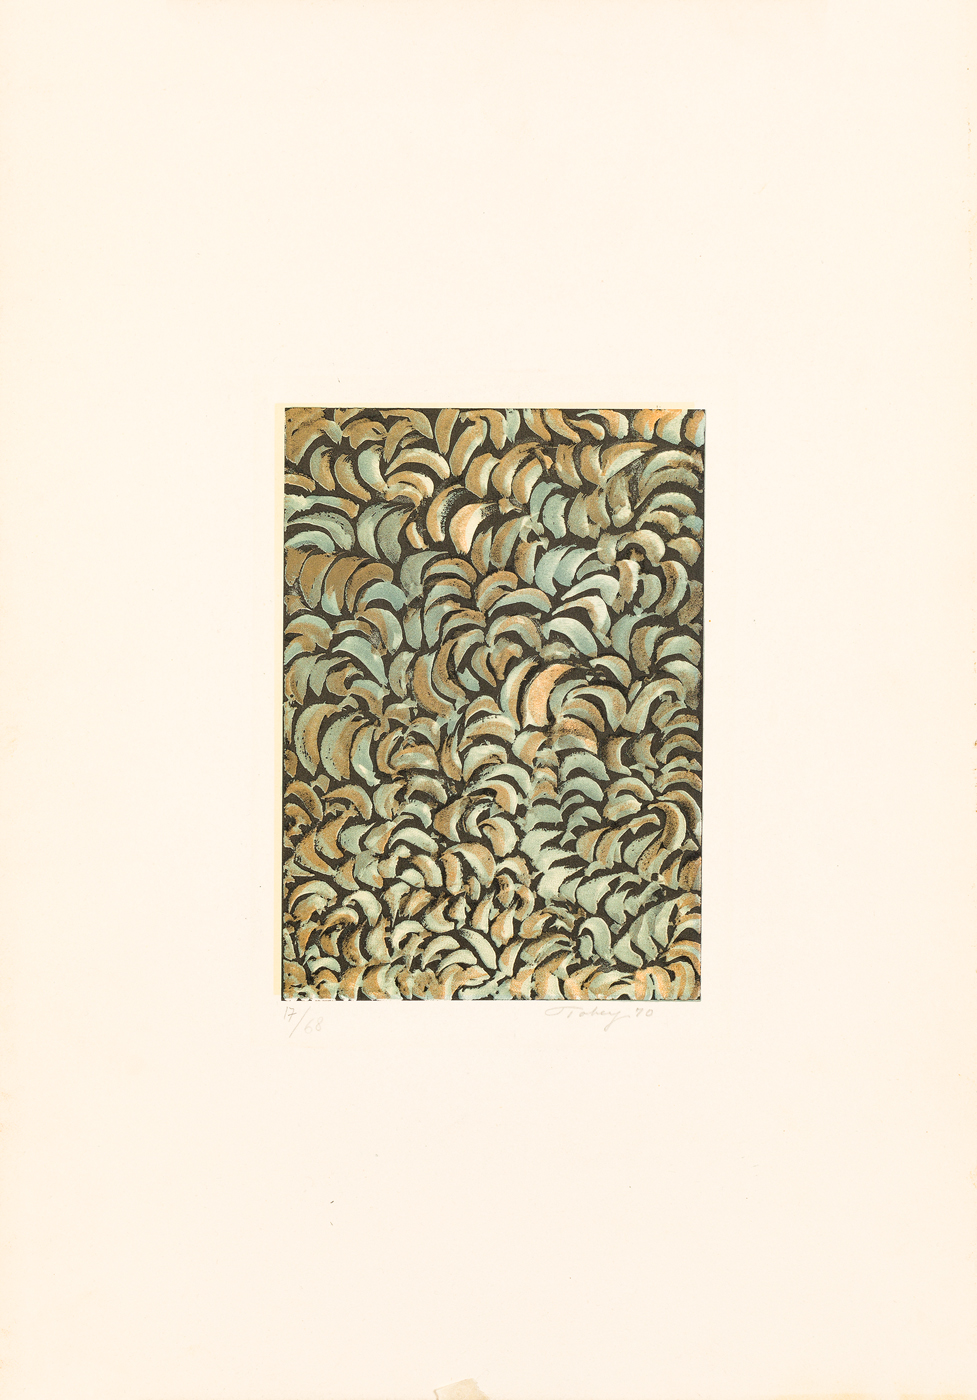 MARK TOBEY (1890-1976) - Senza Titolo, 1970